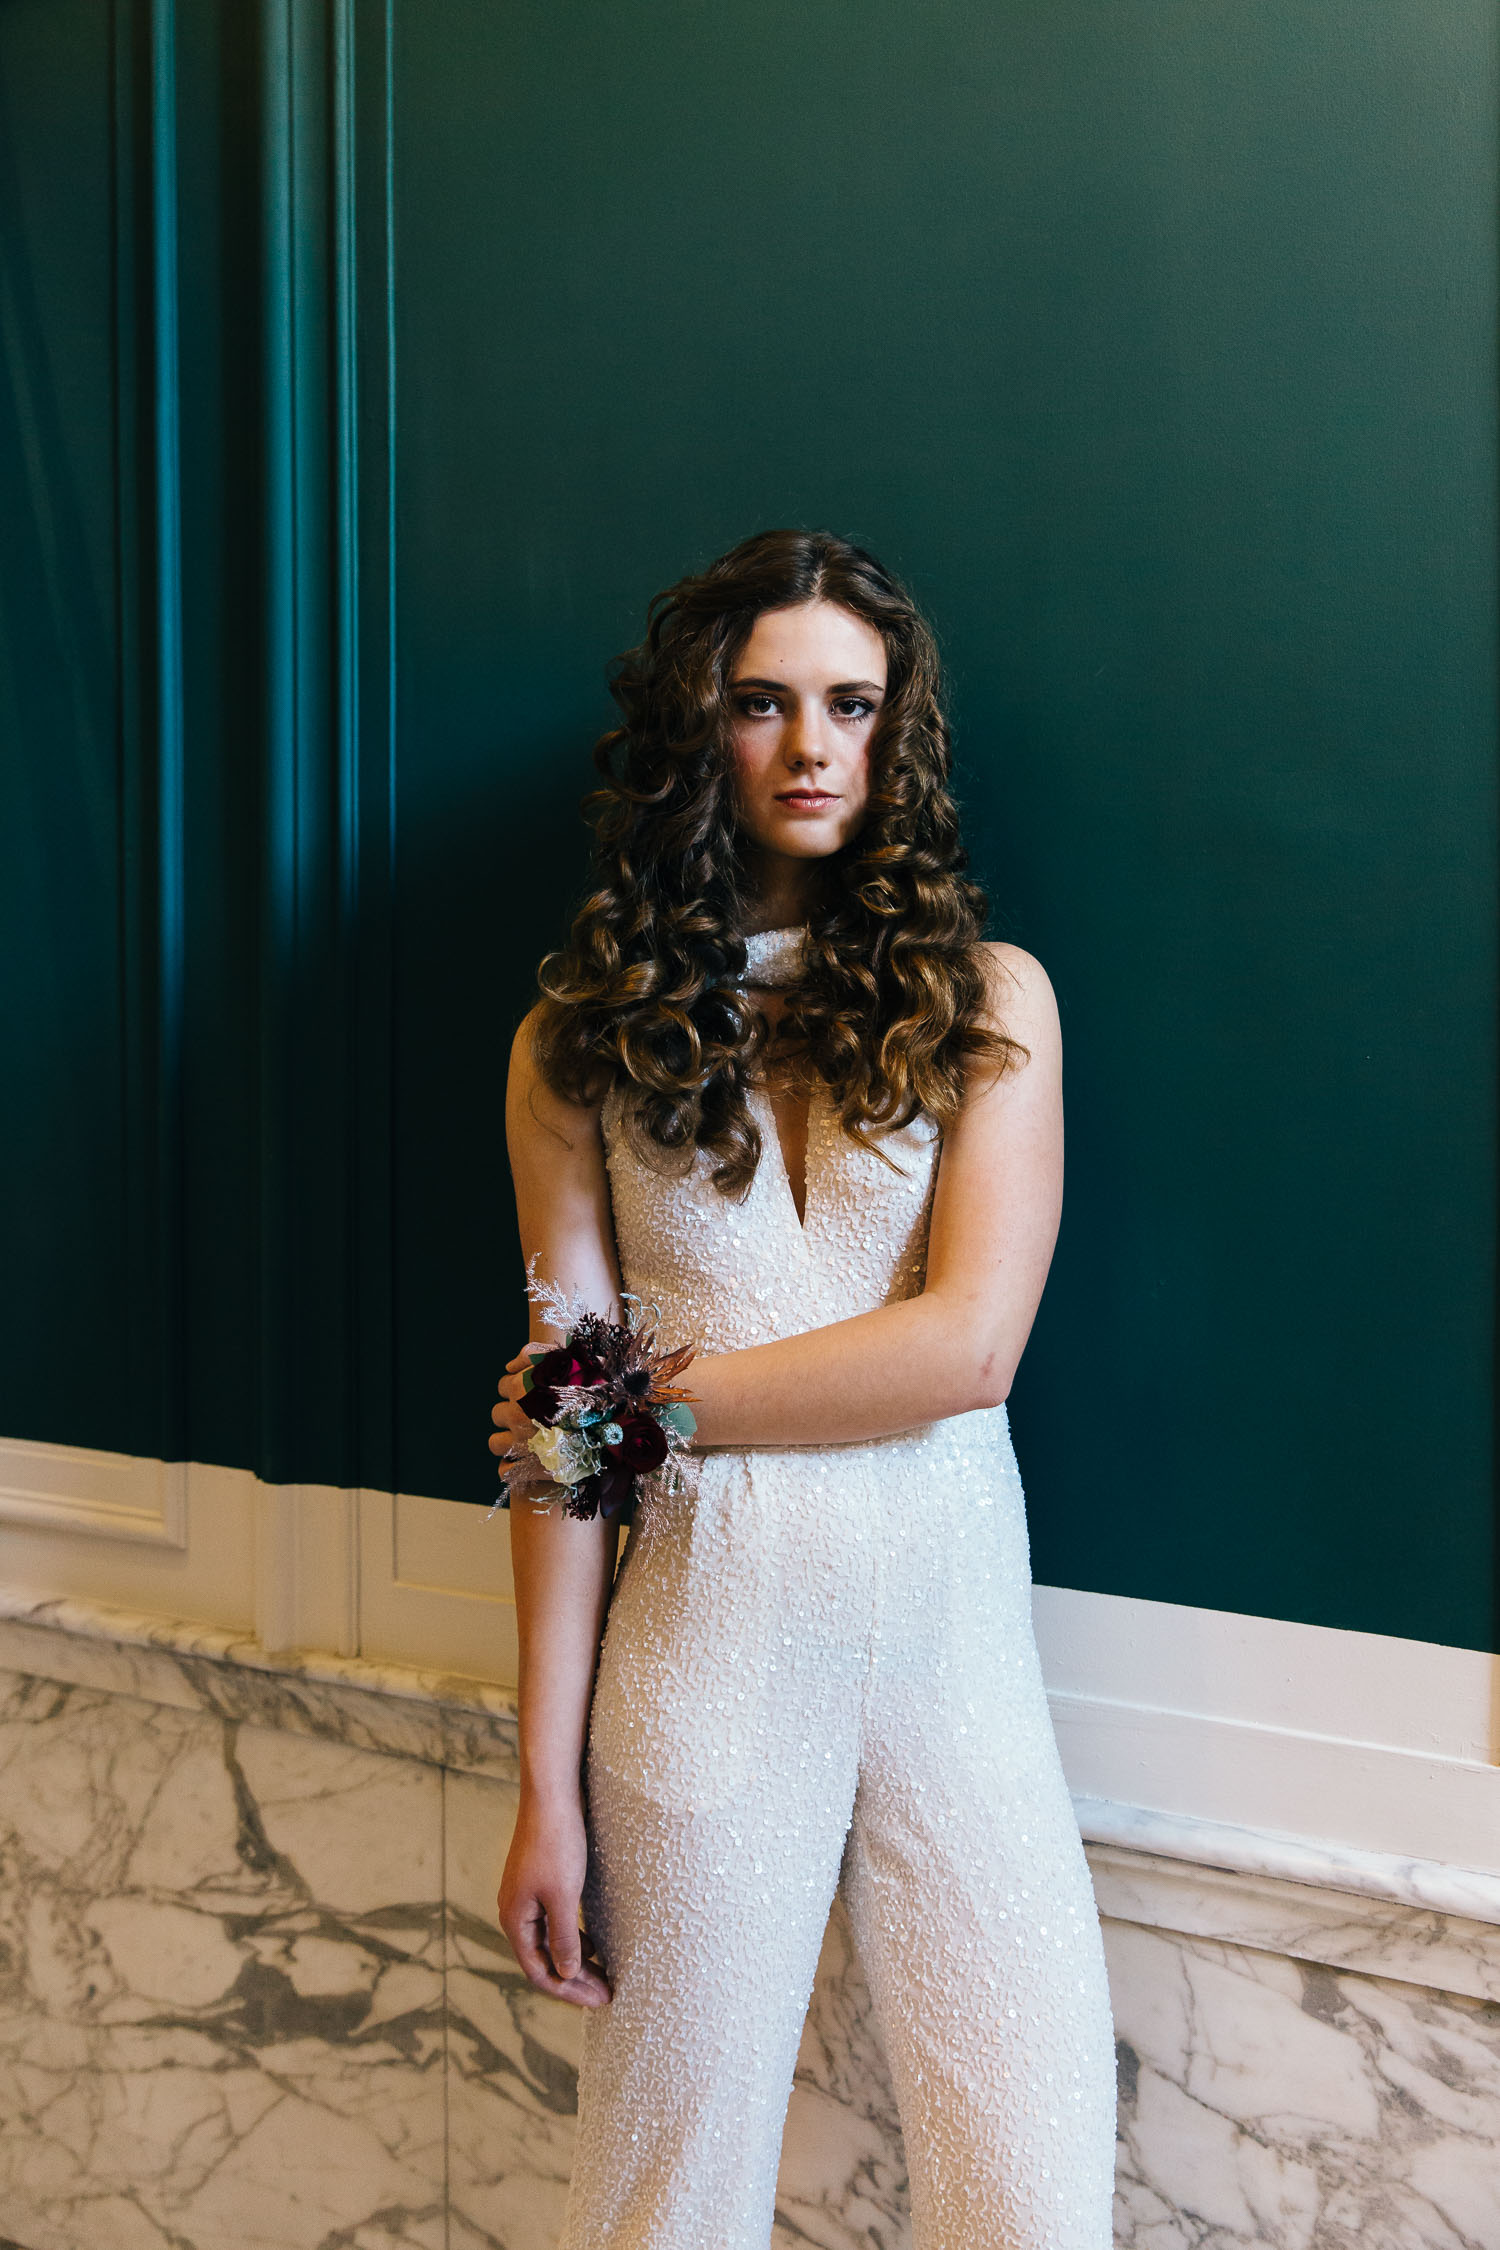 Wedding-industry-shoot-by-On-a-hazy-morning-Amsterdam-11.jpg